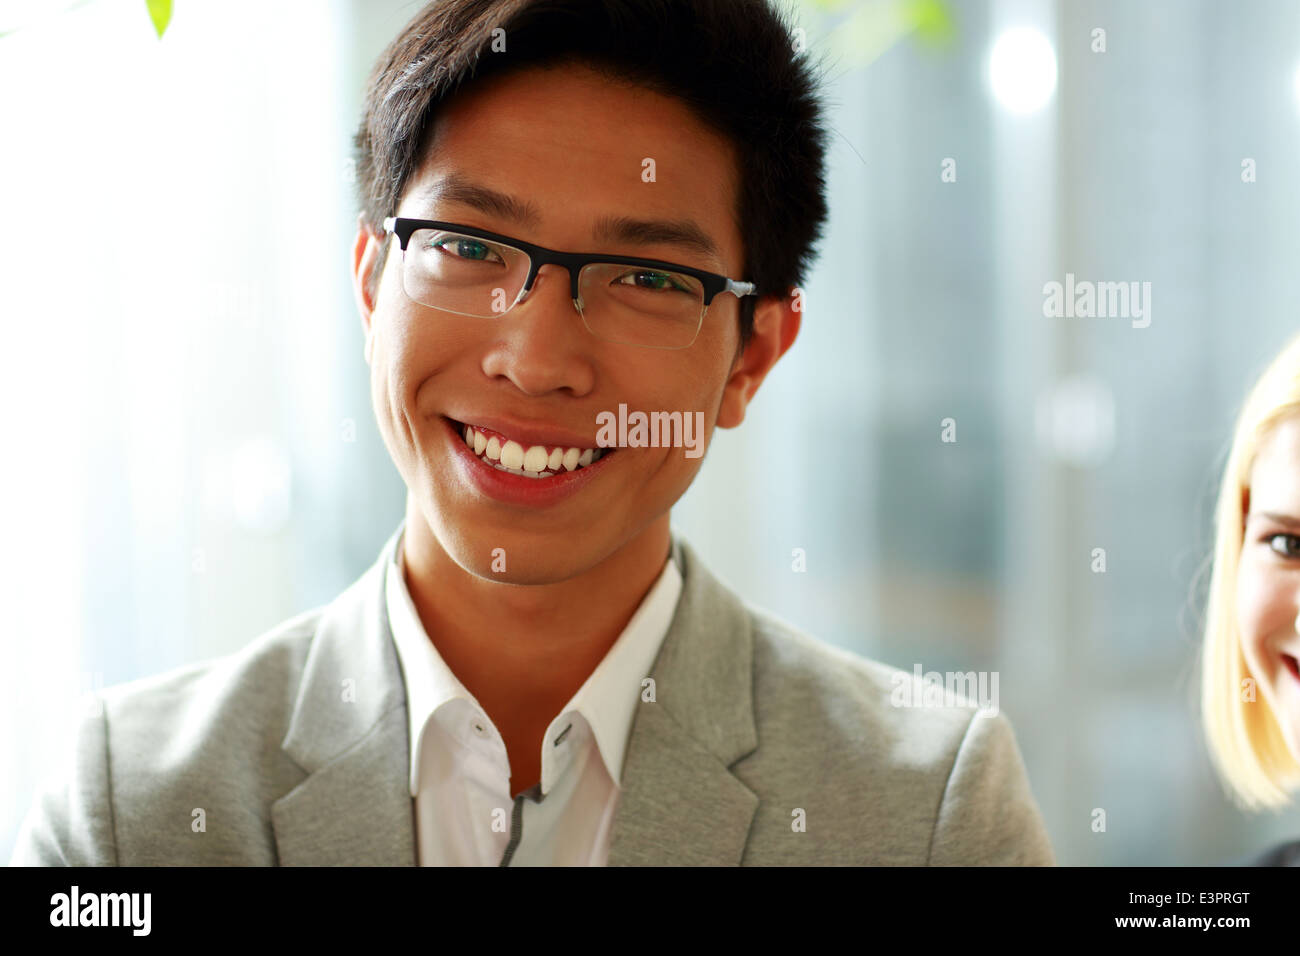 Portrait of a smiling woman in glasses at office Photo Stock